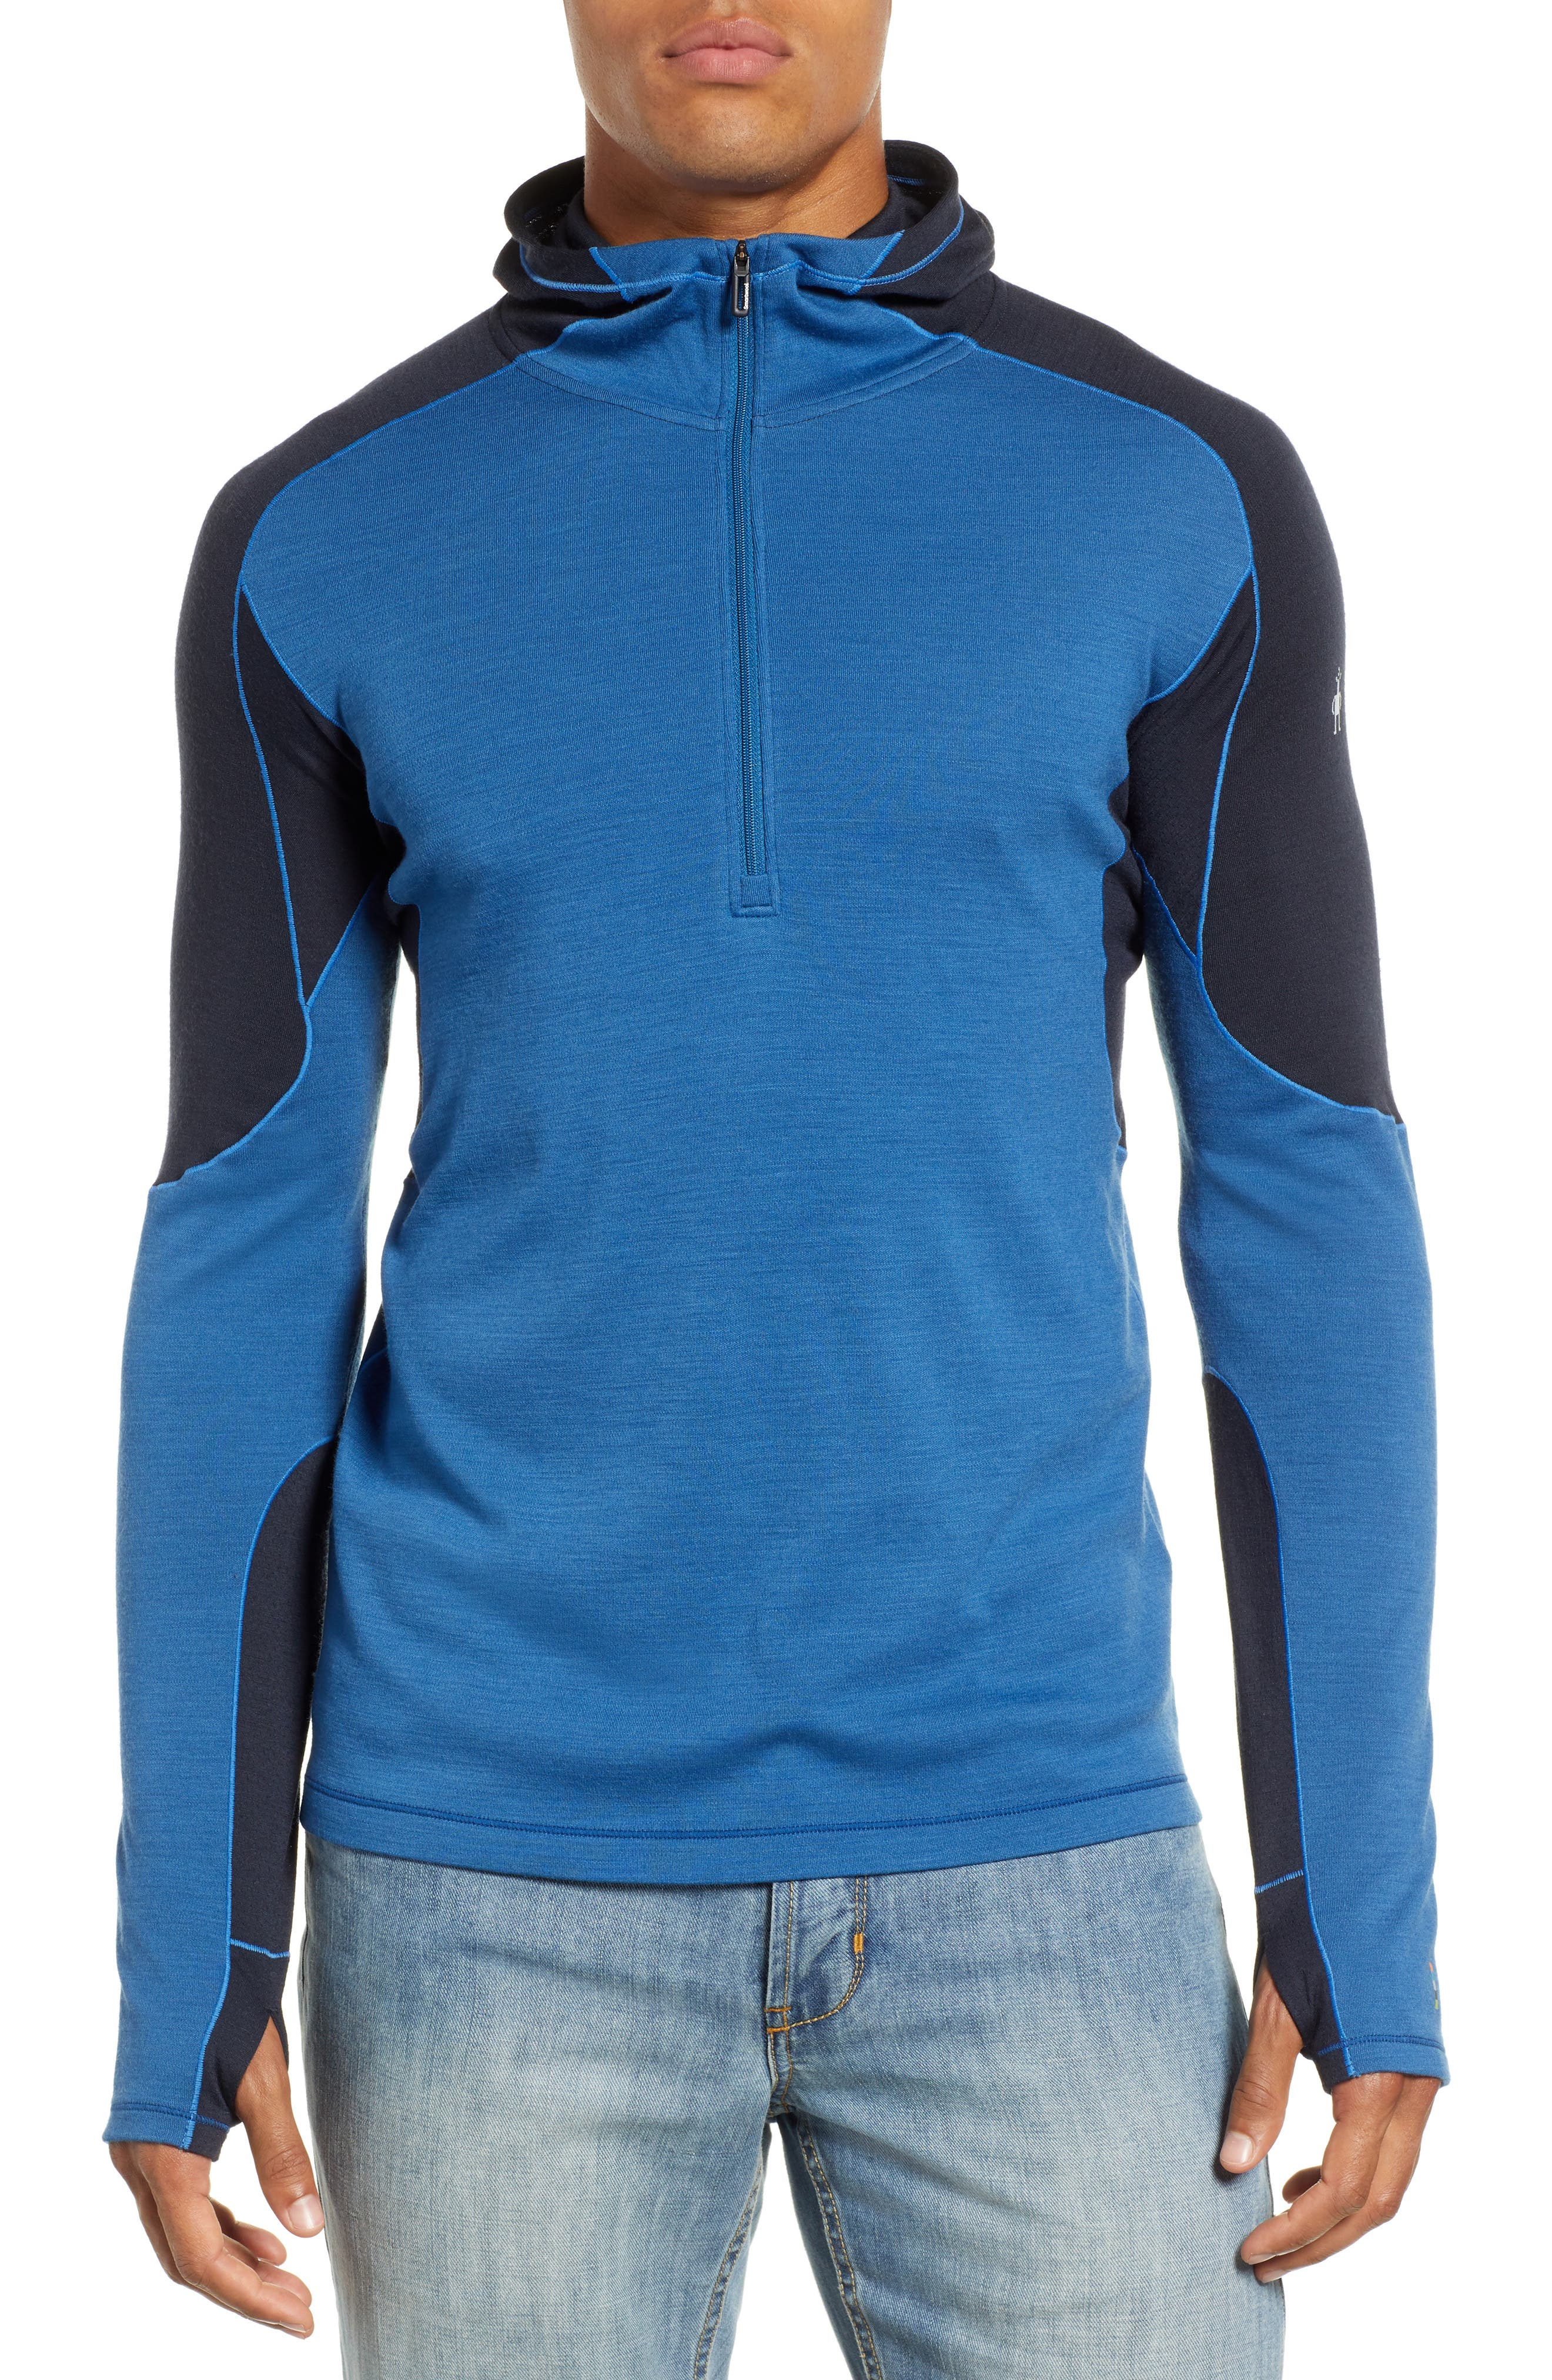 PhD<sup>®</sup> Light Merino Wool Blend Hooded Pullover,                             Main thumbnail 1, color,                             BRIGHT COBALT HEATHER